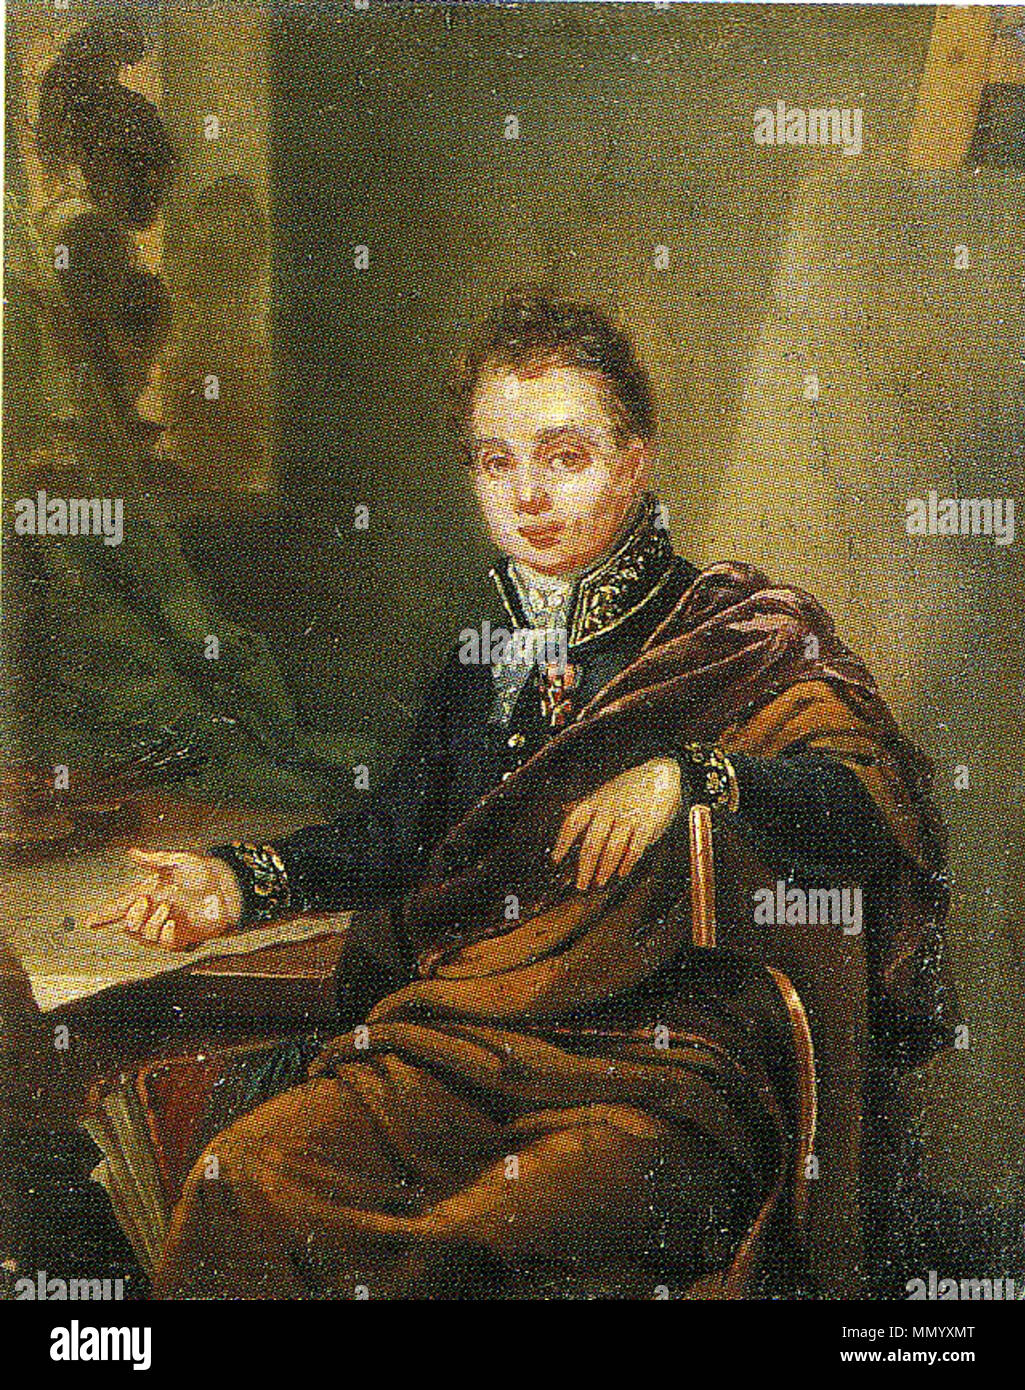 . Портрет А.И. Иванова, профессора АХ. 1824 ГРМ  . 1824.   Ivan Bugaevskiy-Blagodarniy (1773–1859)   Alternative names English: The information about the life of the painter is fragmentary and discrepant. In particular, there are variants of the spelling of his family name: Bugaevskiy or Bogaevskiy, Blagodarniy or Blagodatniy (Russian: ?????????? or ??????????, ??????????? or ???????????). As well, there are variants of the painter's patronymic: Vasilievich or Semyonovich (Russian: ?????????? or ?????????). ???????: ??????????? ?????? ???????? ????????? ??????? ?????????: «??????????» ??? « Stock Photo